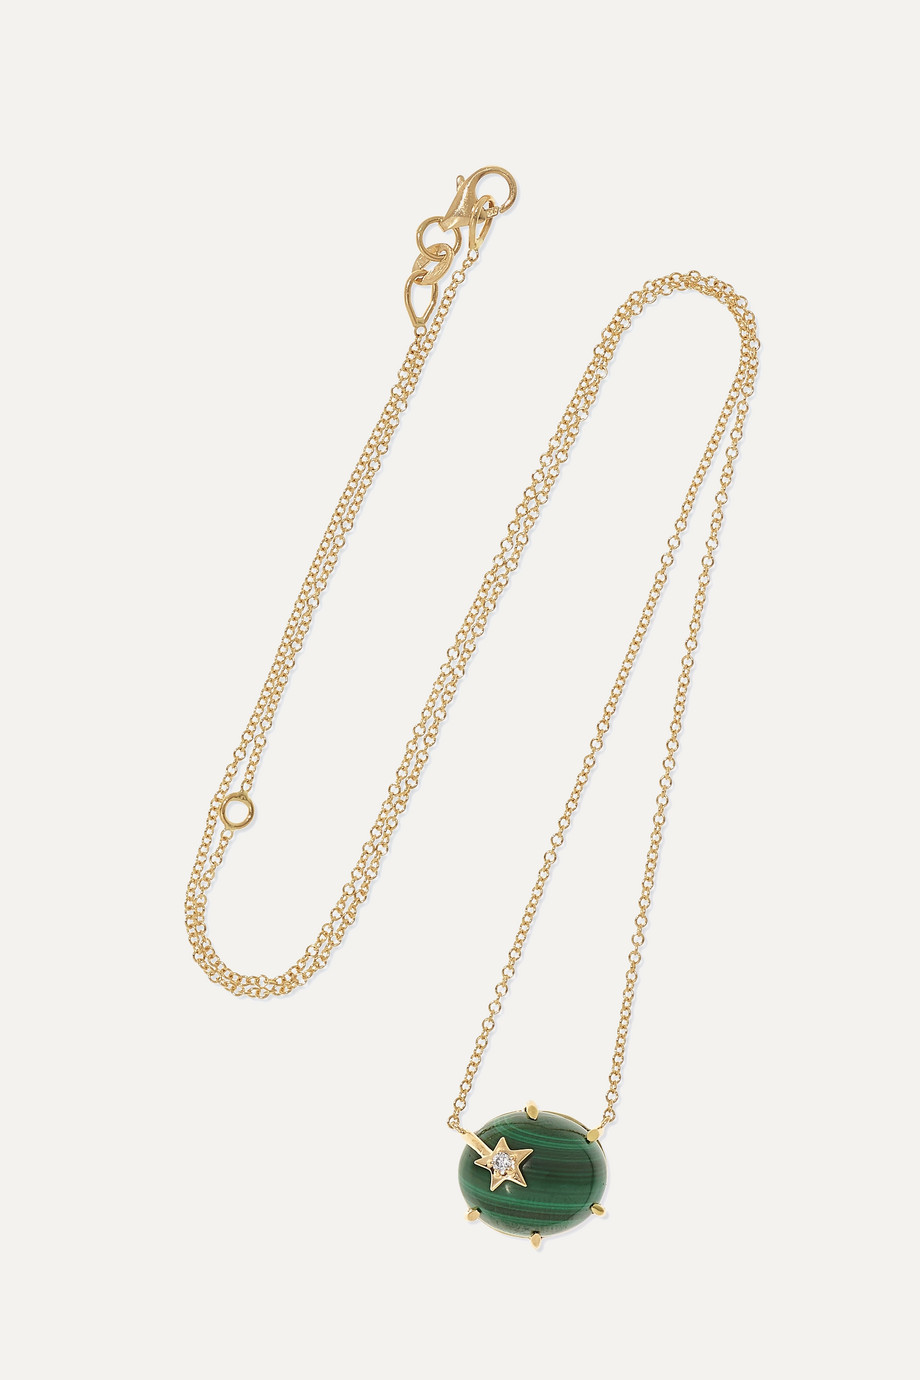 ANDREA FOHRMAN Mini Galaxy 18-karat gold, malachite and diamond necklace